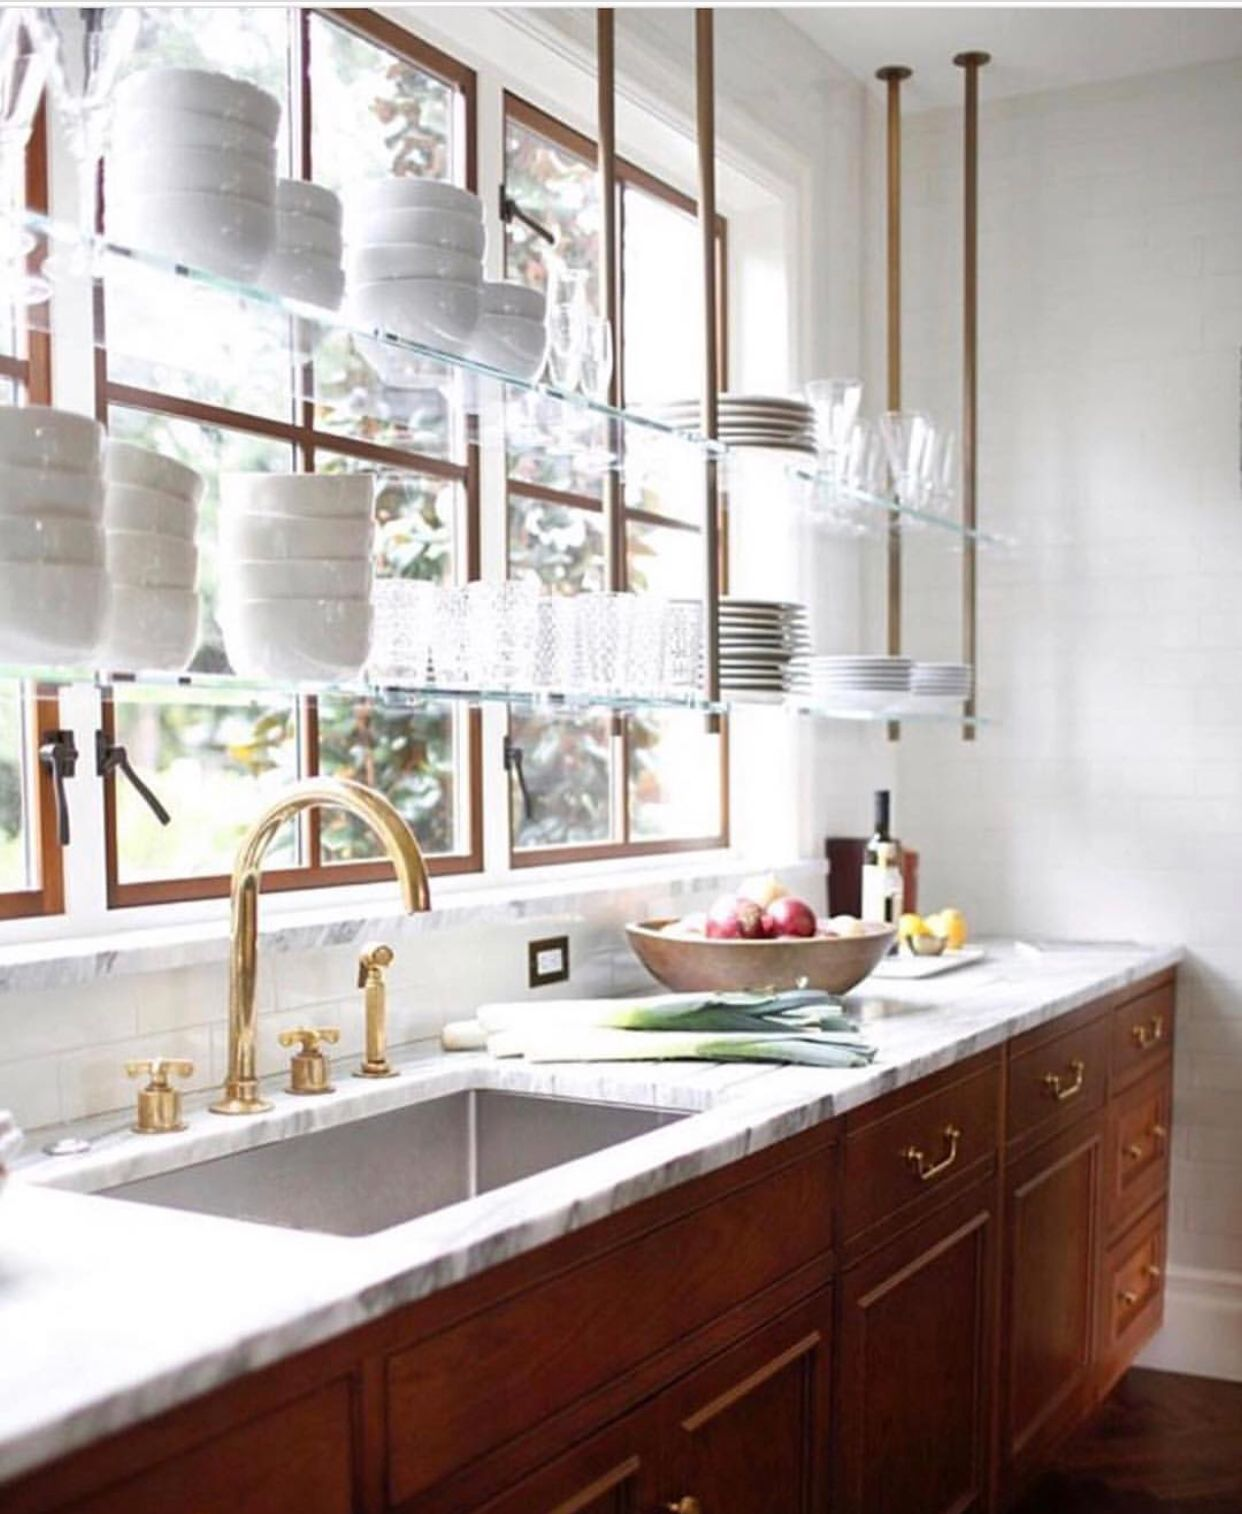 Waterworks Kitchen Glass Shelves In Front Of Window Instead Of